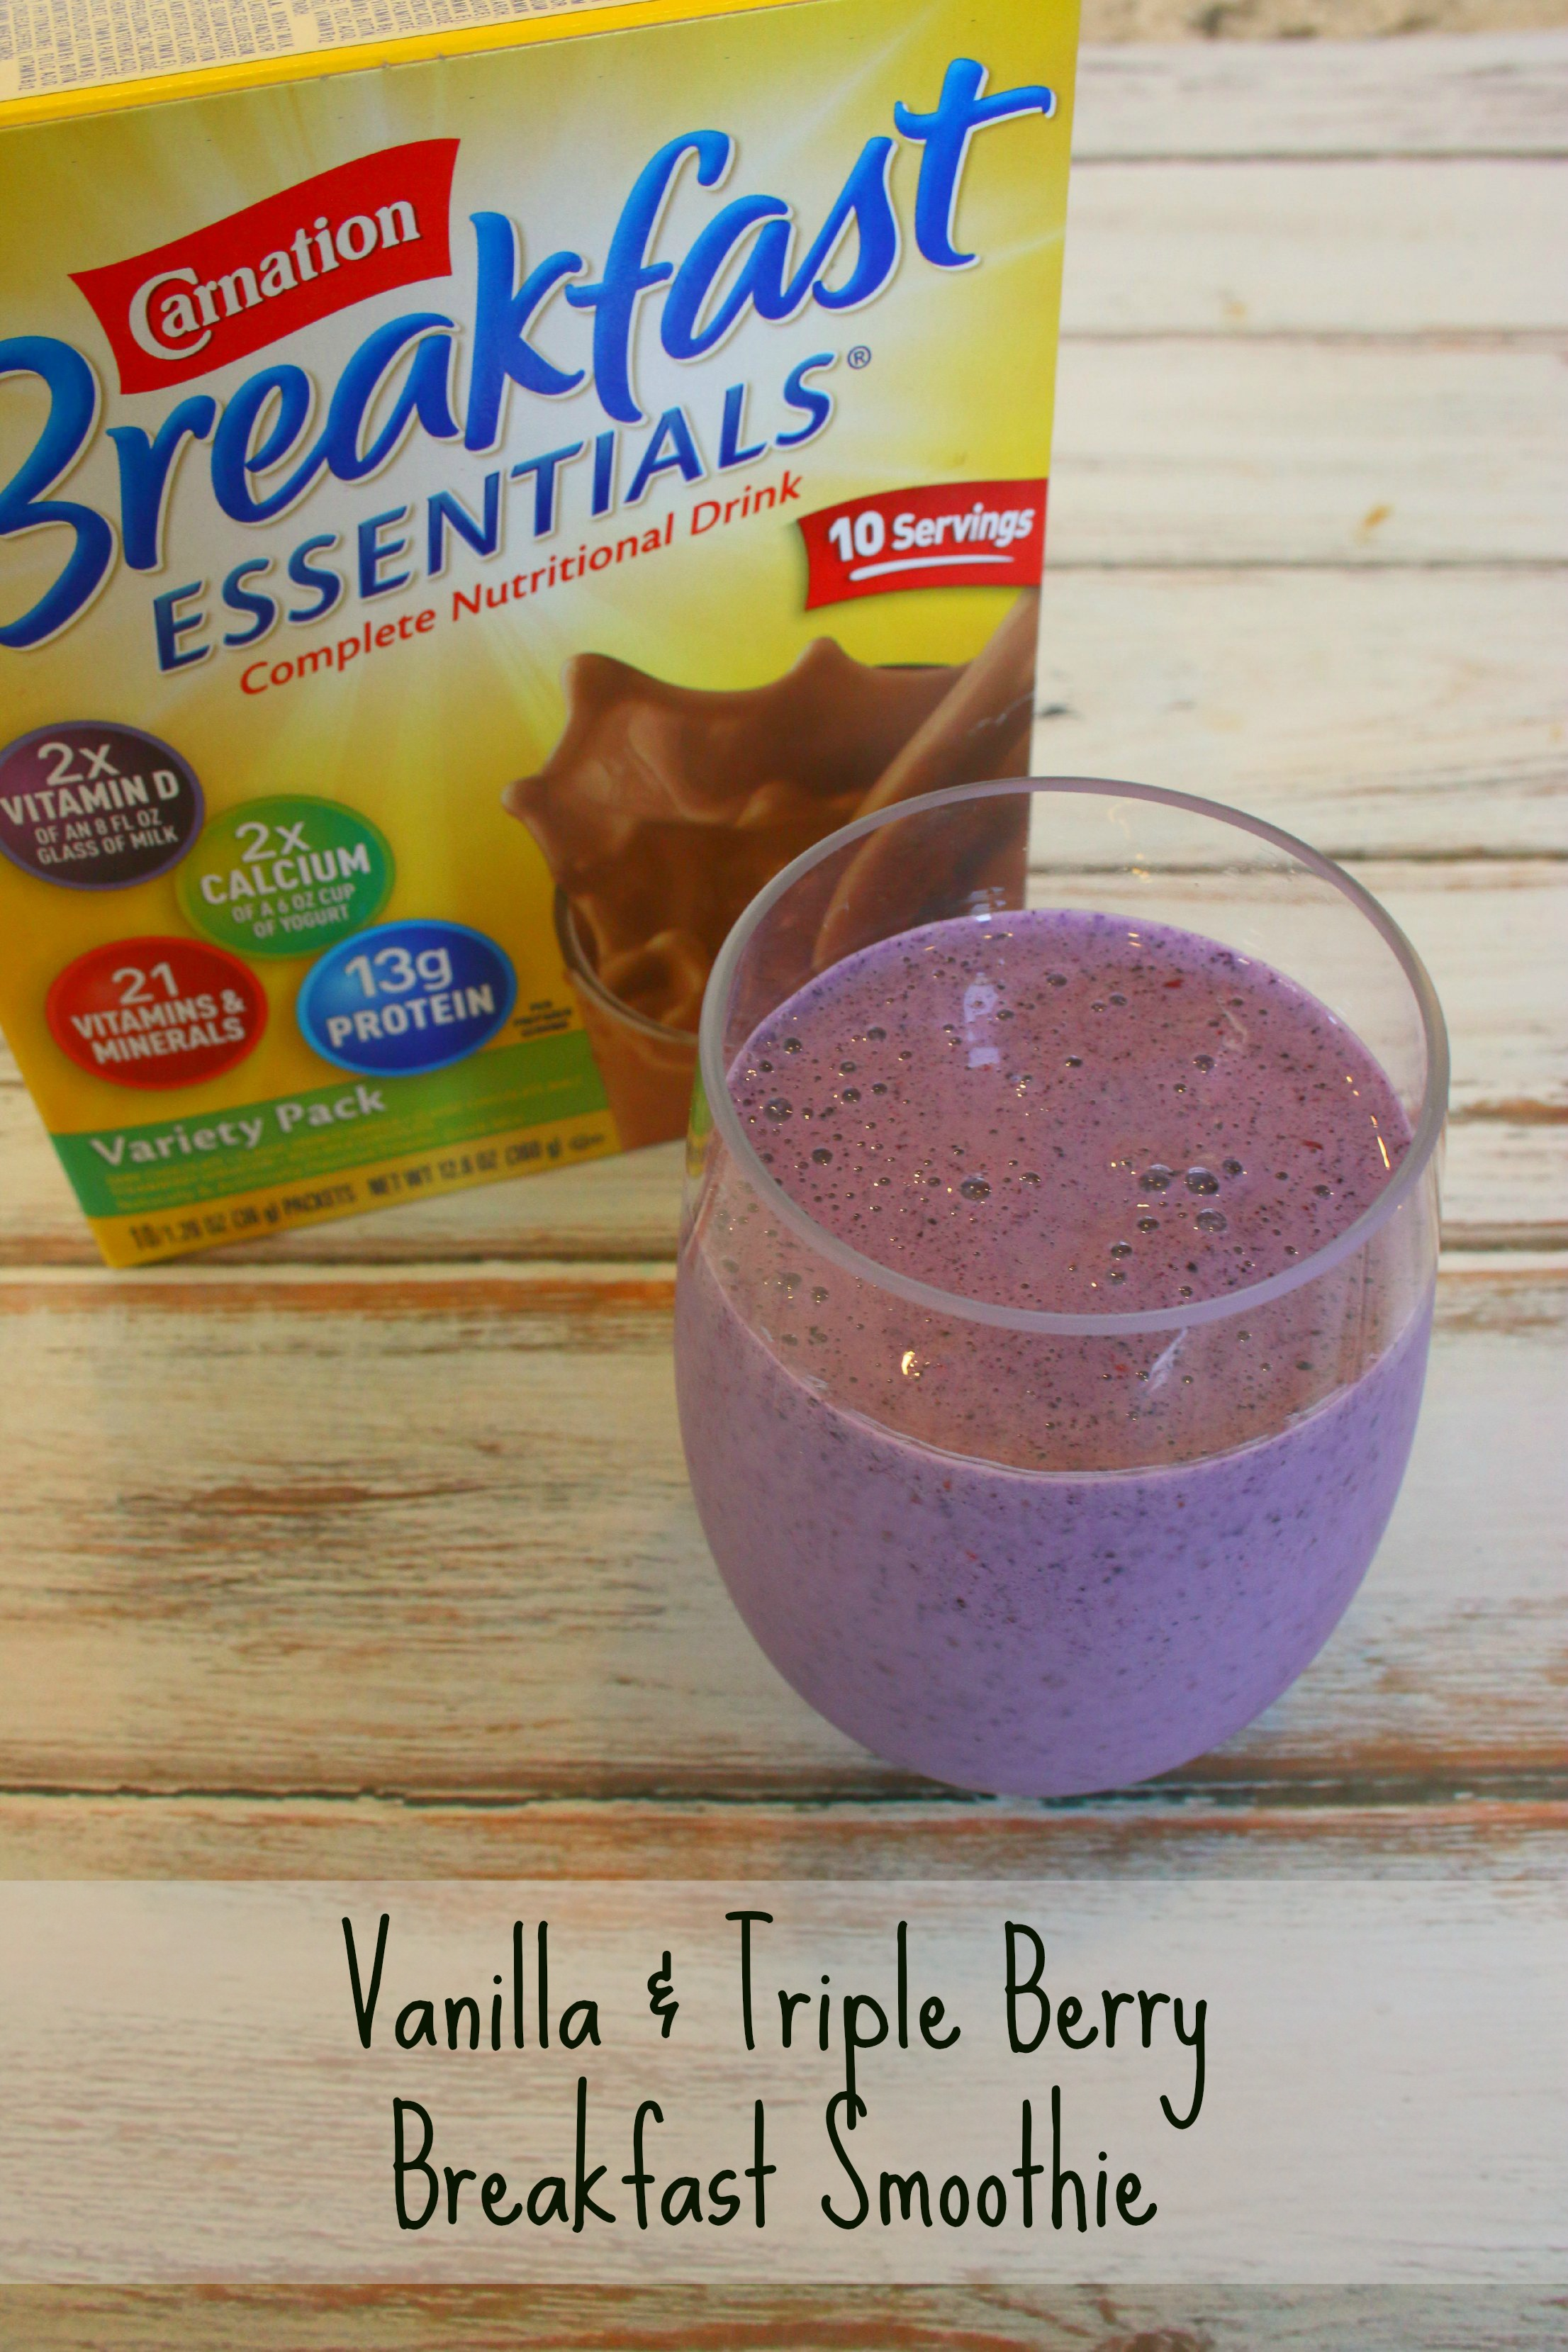 Vanilla And Triple Berry Breakfast Smoothie With Carnation